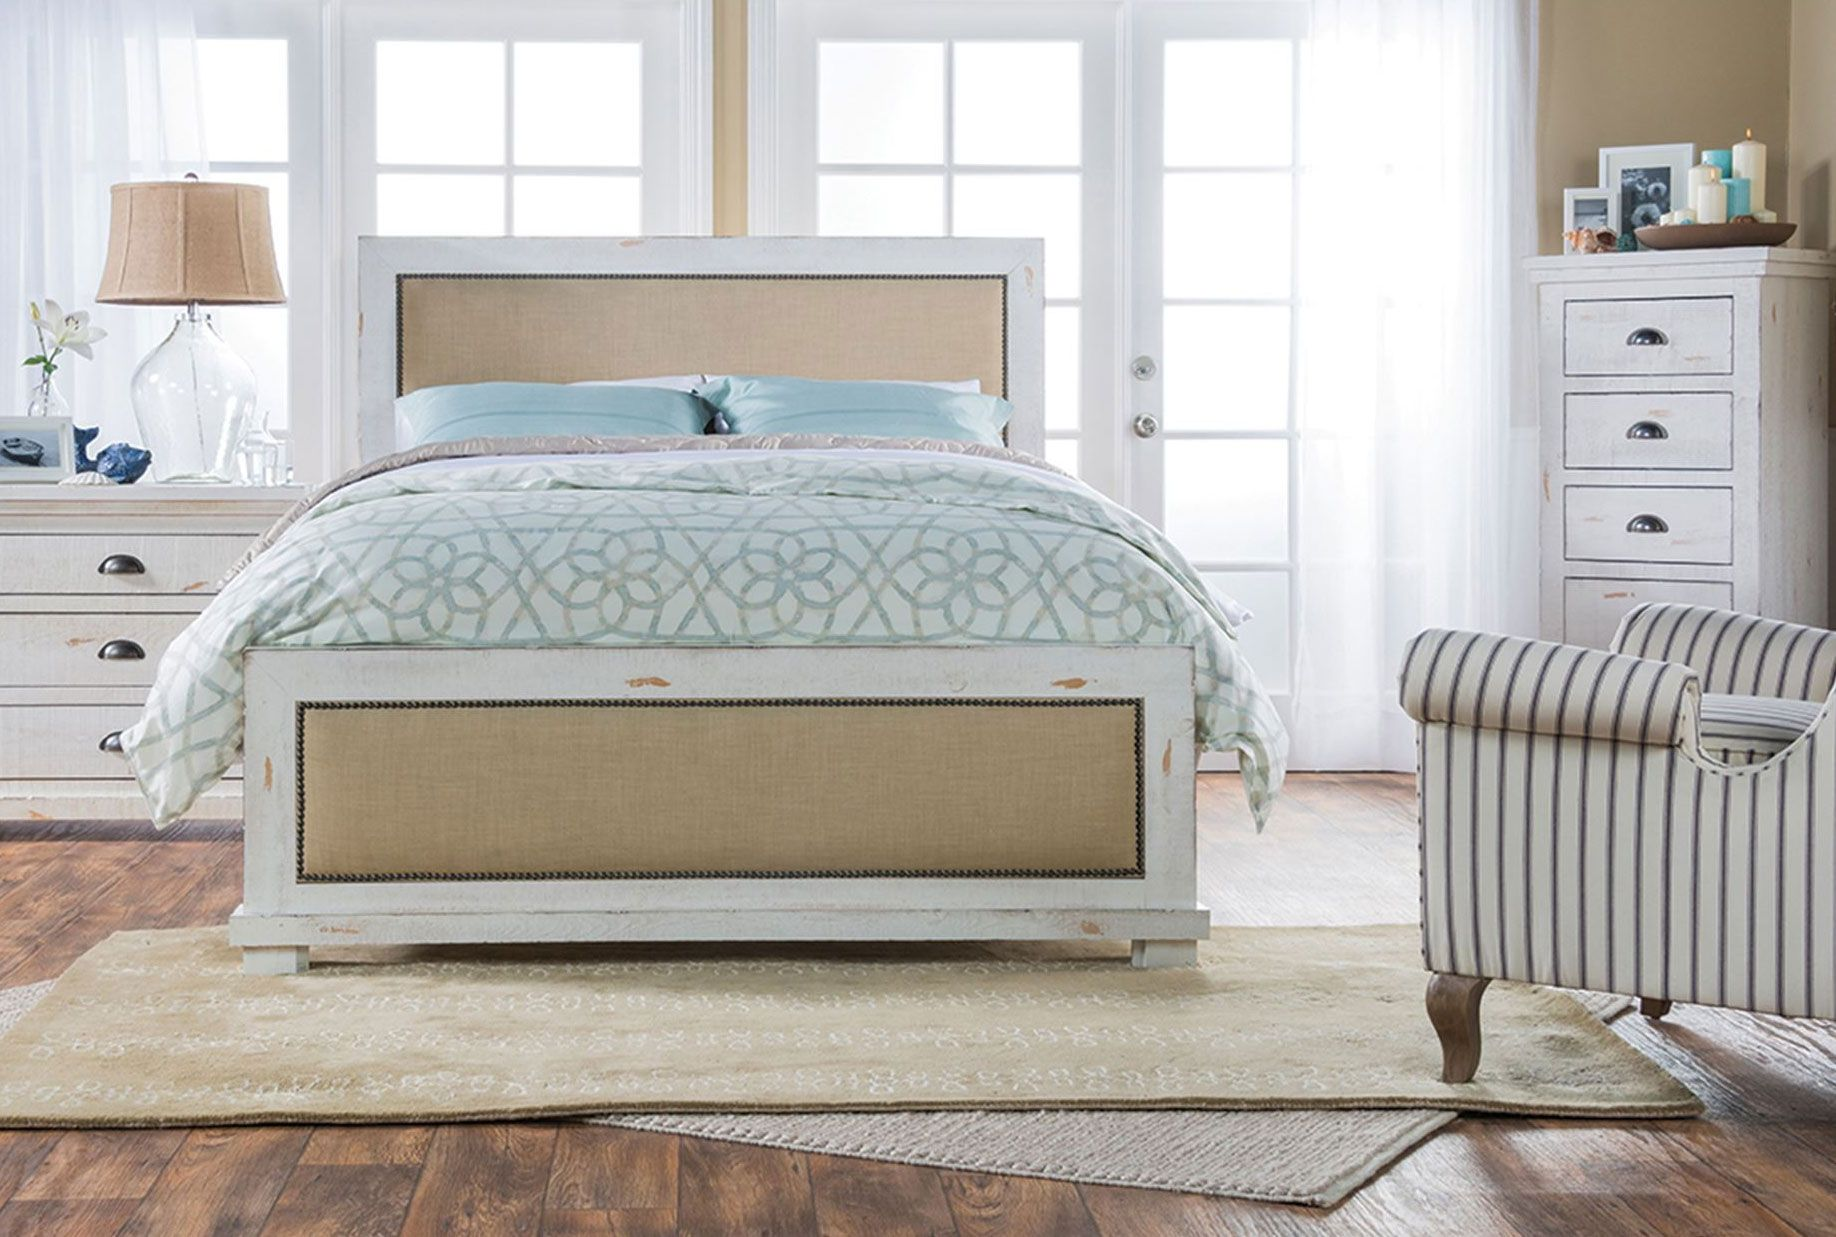 the sinclair bed sets the stage for a multilayered space with its